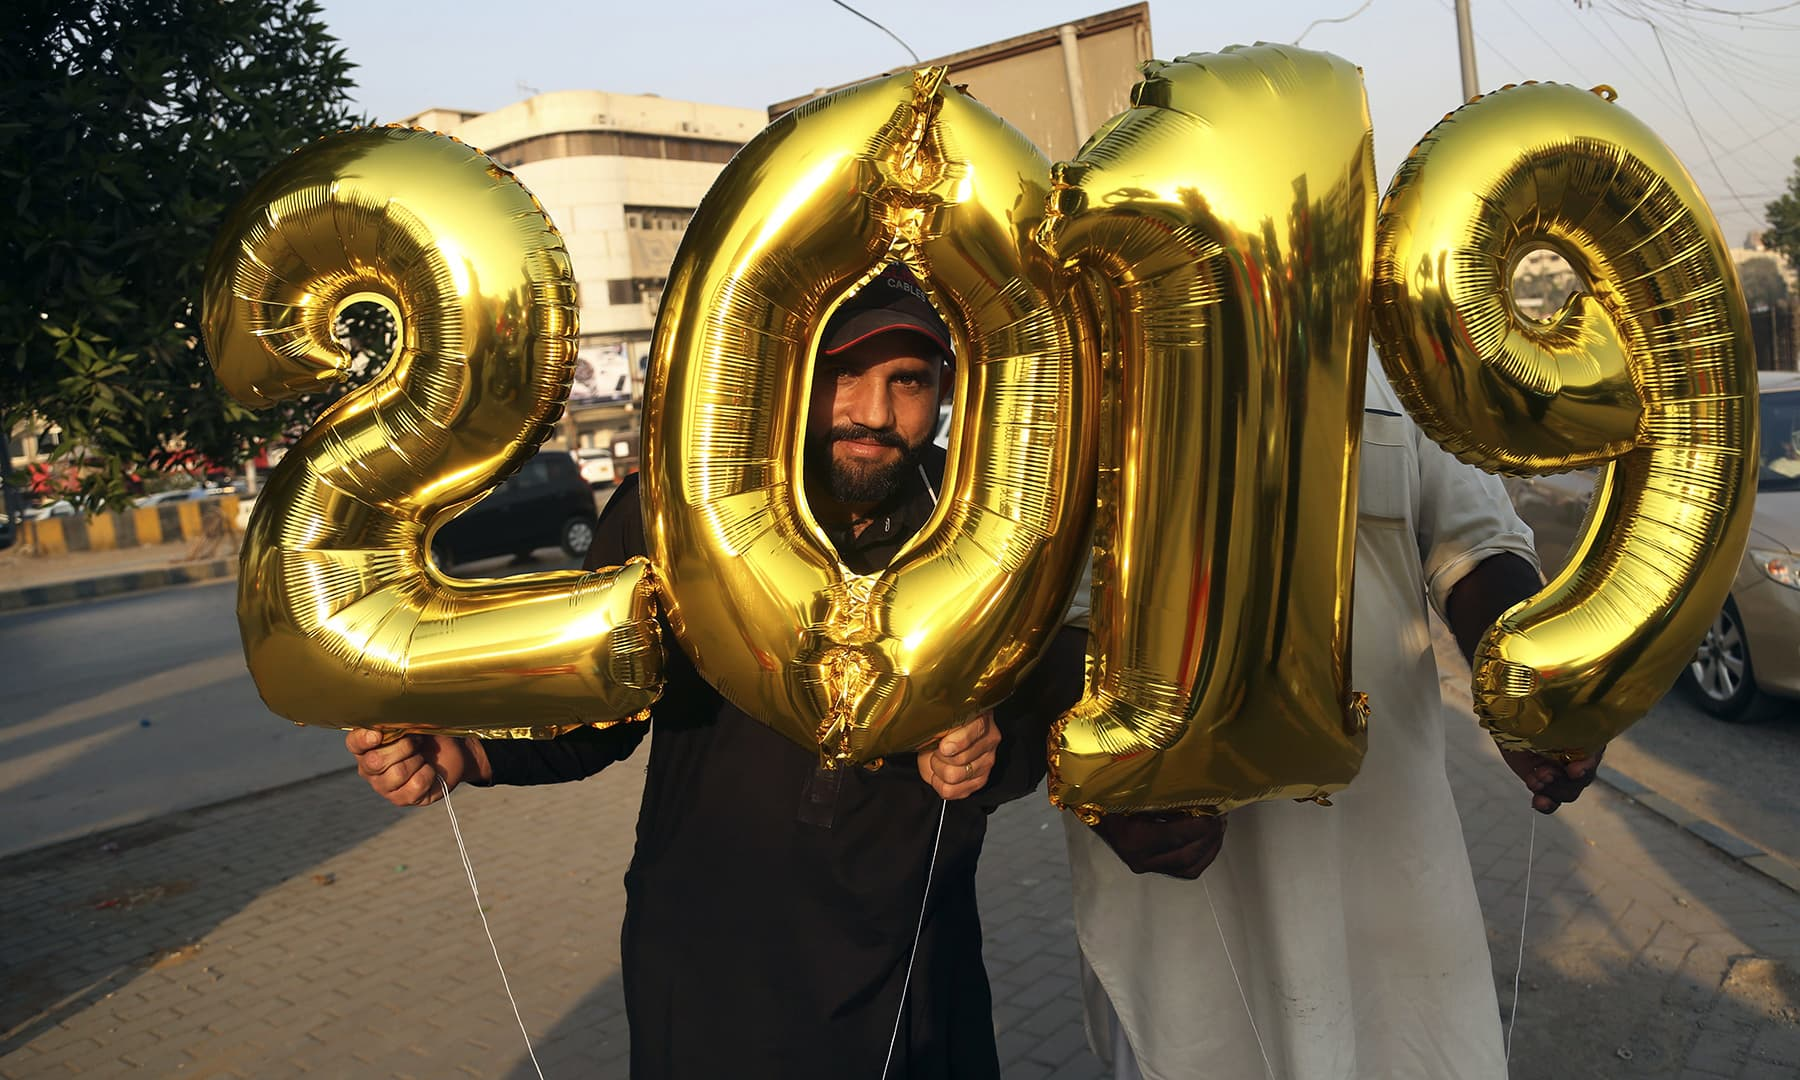 Vendors sell balloons on New Year's Eve in Karachi on Monday. — AP